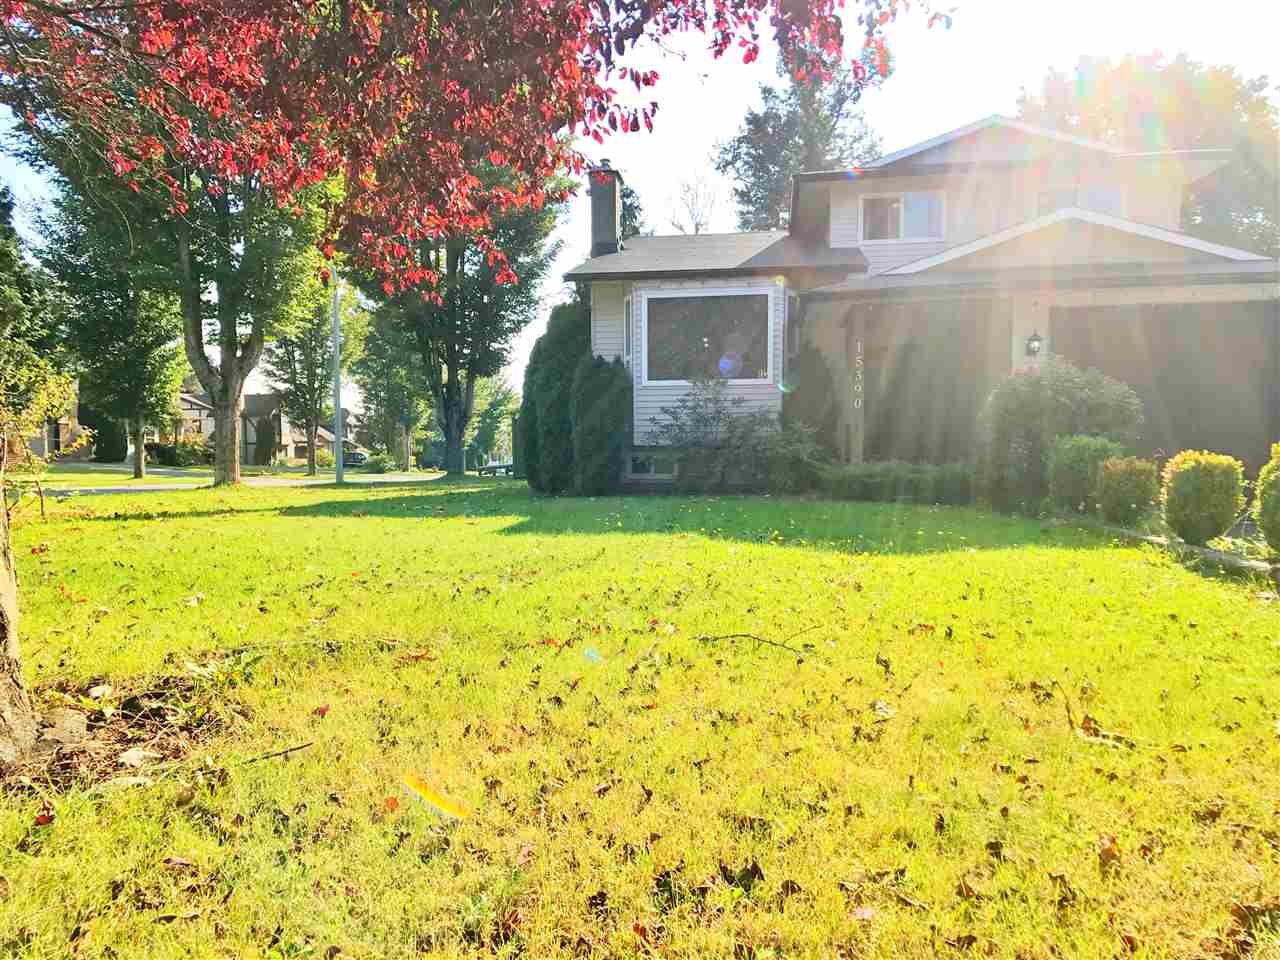 15390 85 AVENUE - Fleetwood Tynehead House/Single Family for sale, 5 Bedrooms (R2504093) - #31